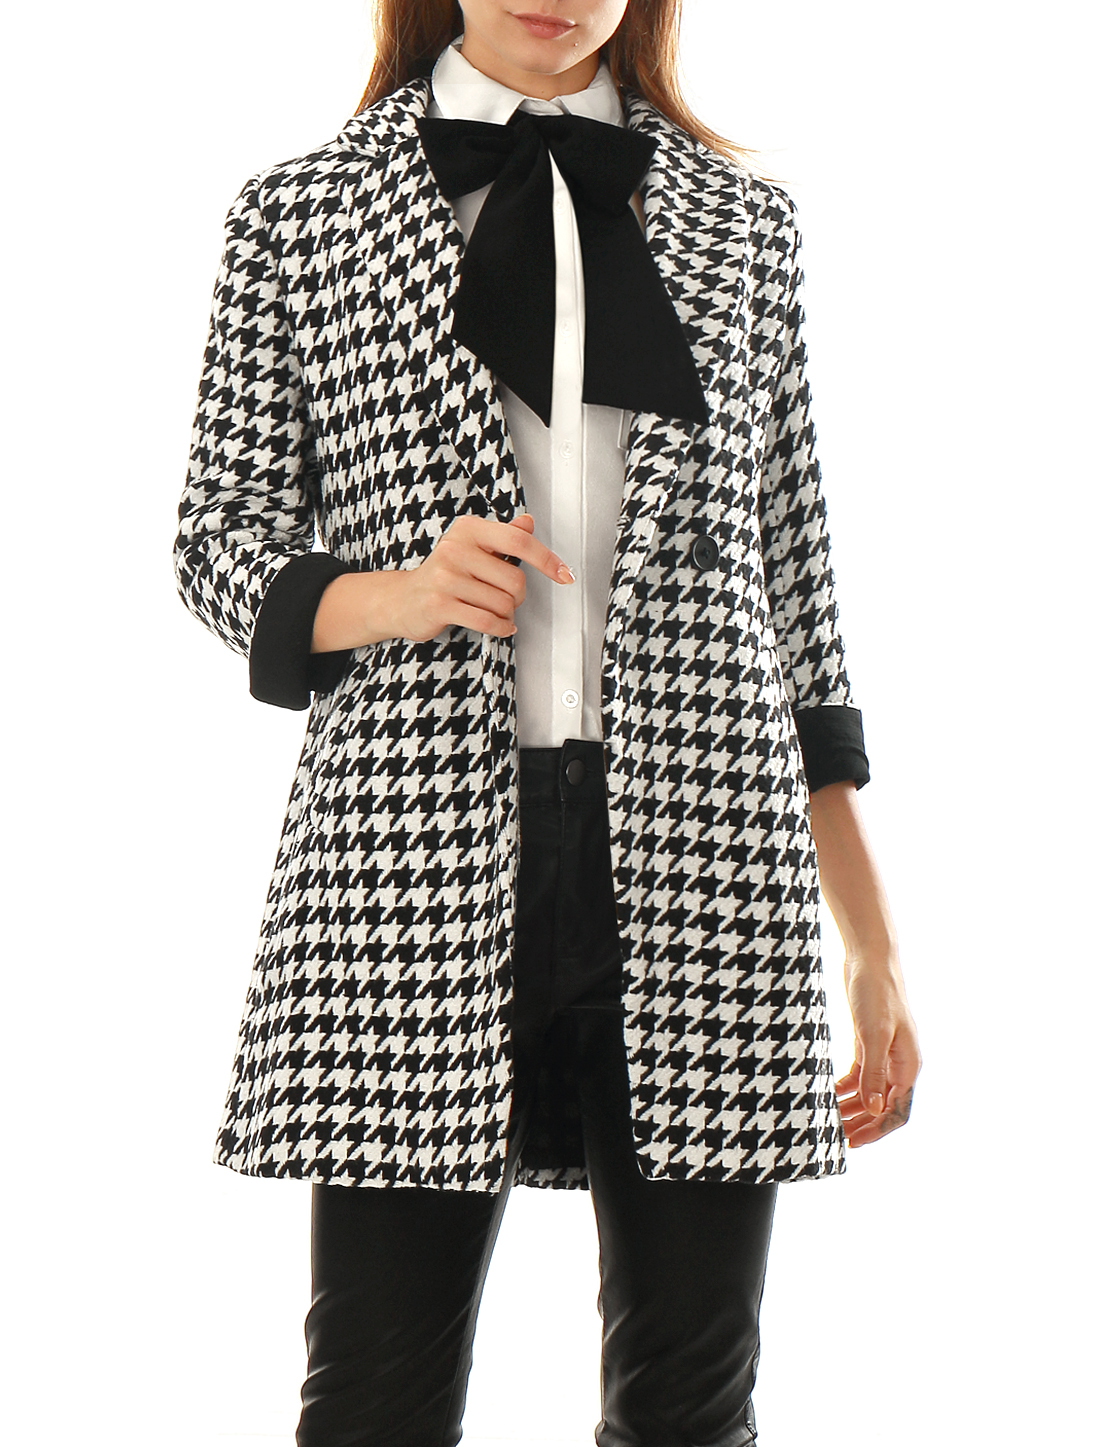 Women Houndstooth Pattern Double Breasted Worsted Coat Black M